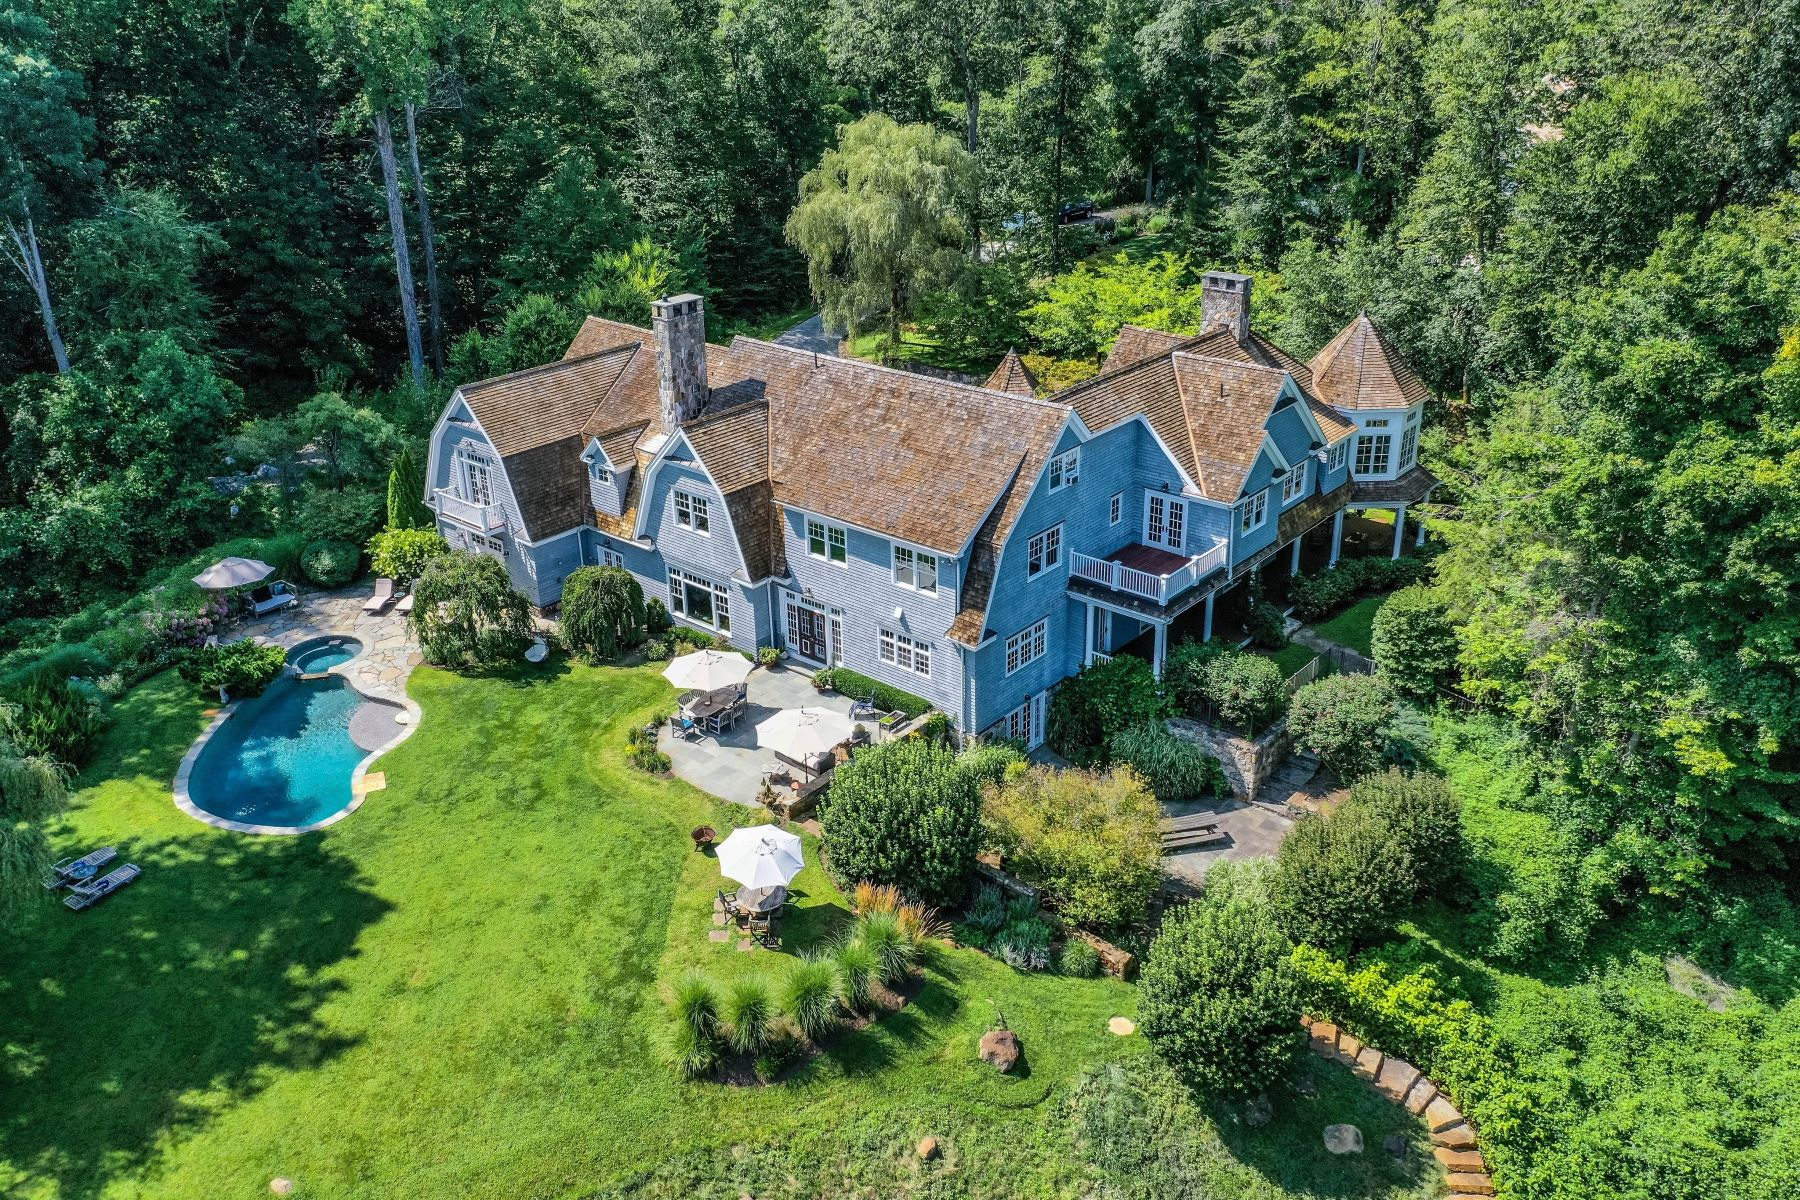 Single Family Homes for Active at Enchanting Retreat with Magnificent Views 36 Michaels Way Weston, Connecticut 06883 United States